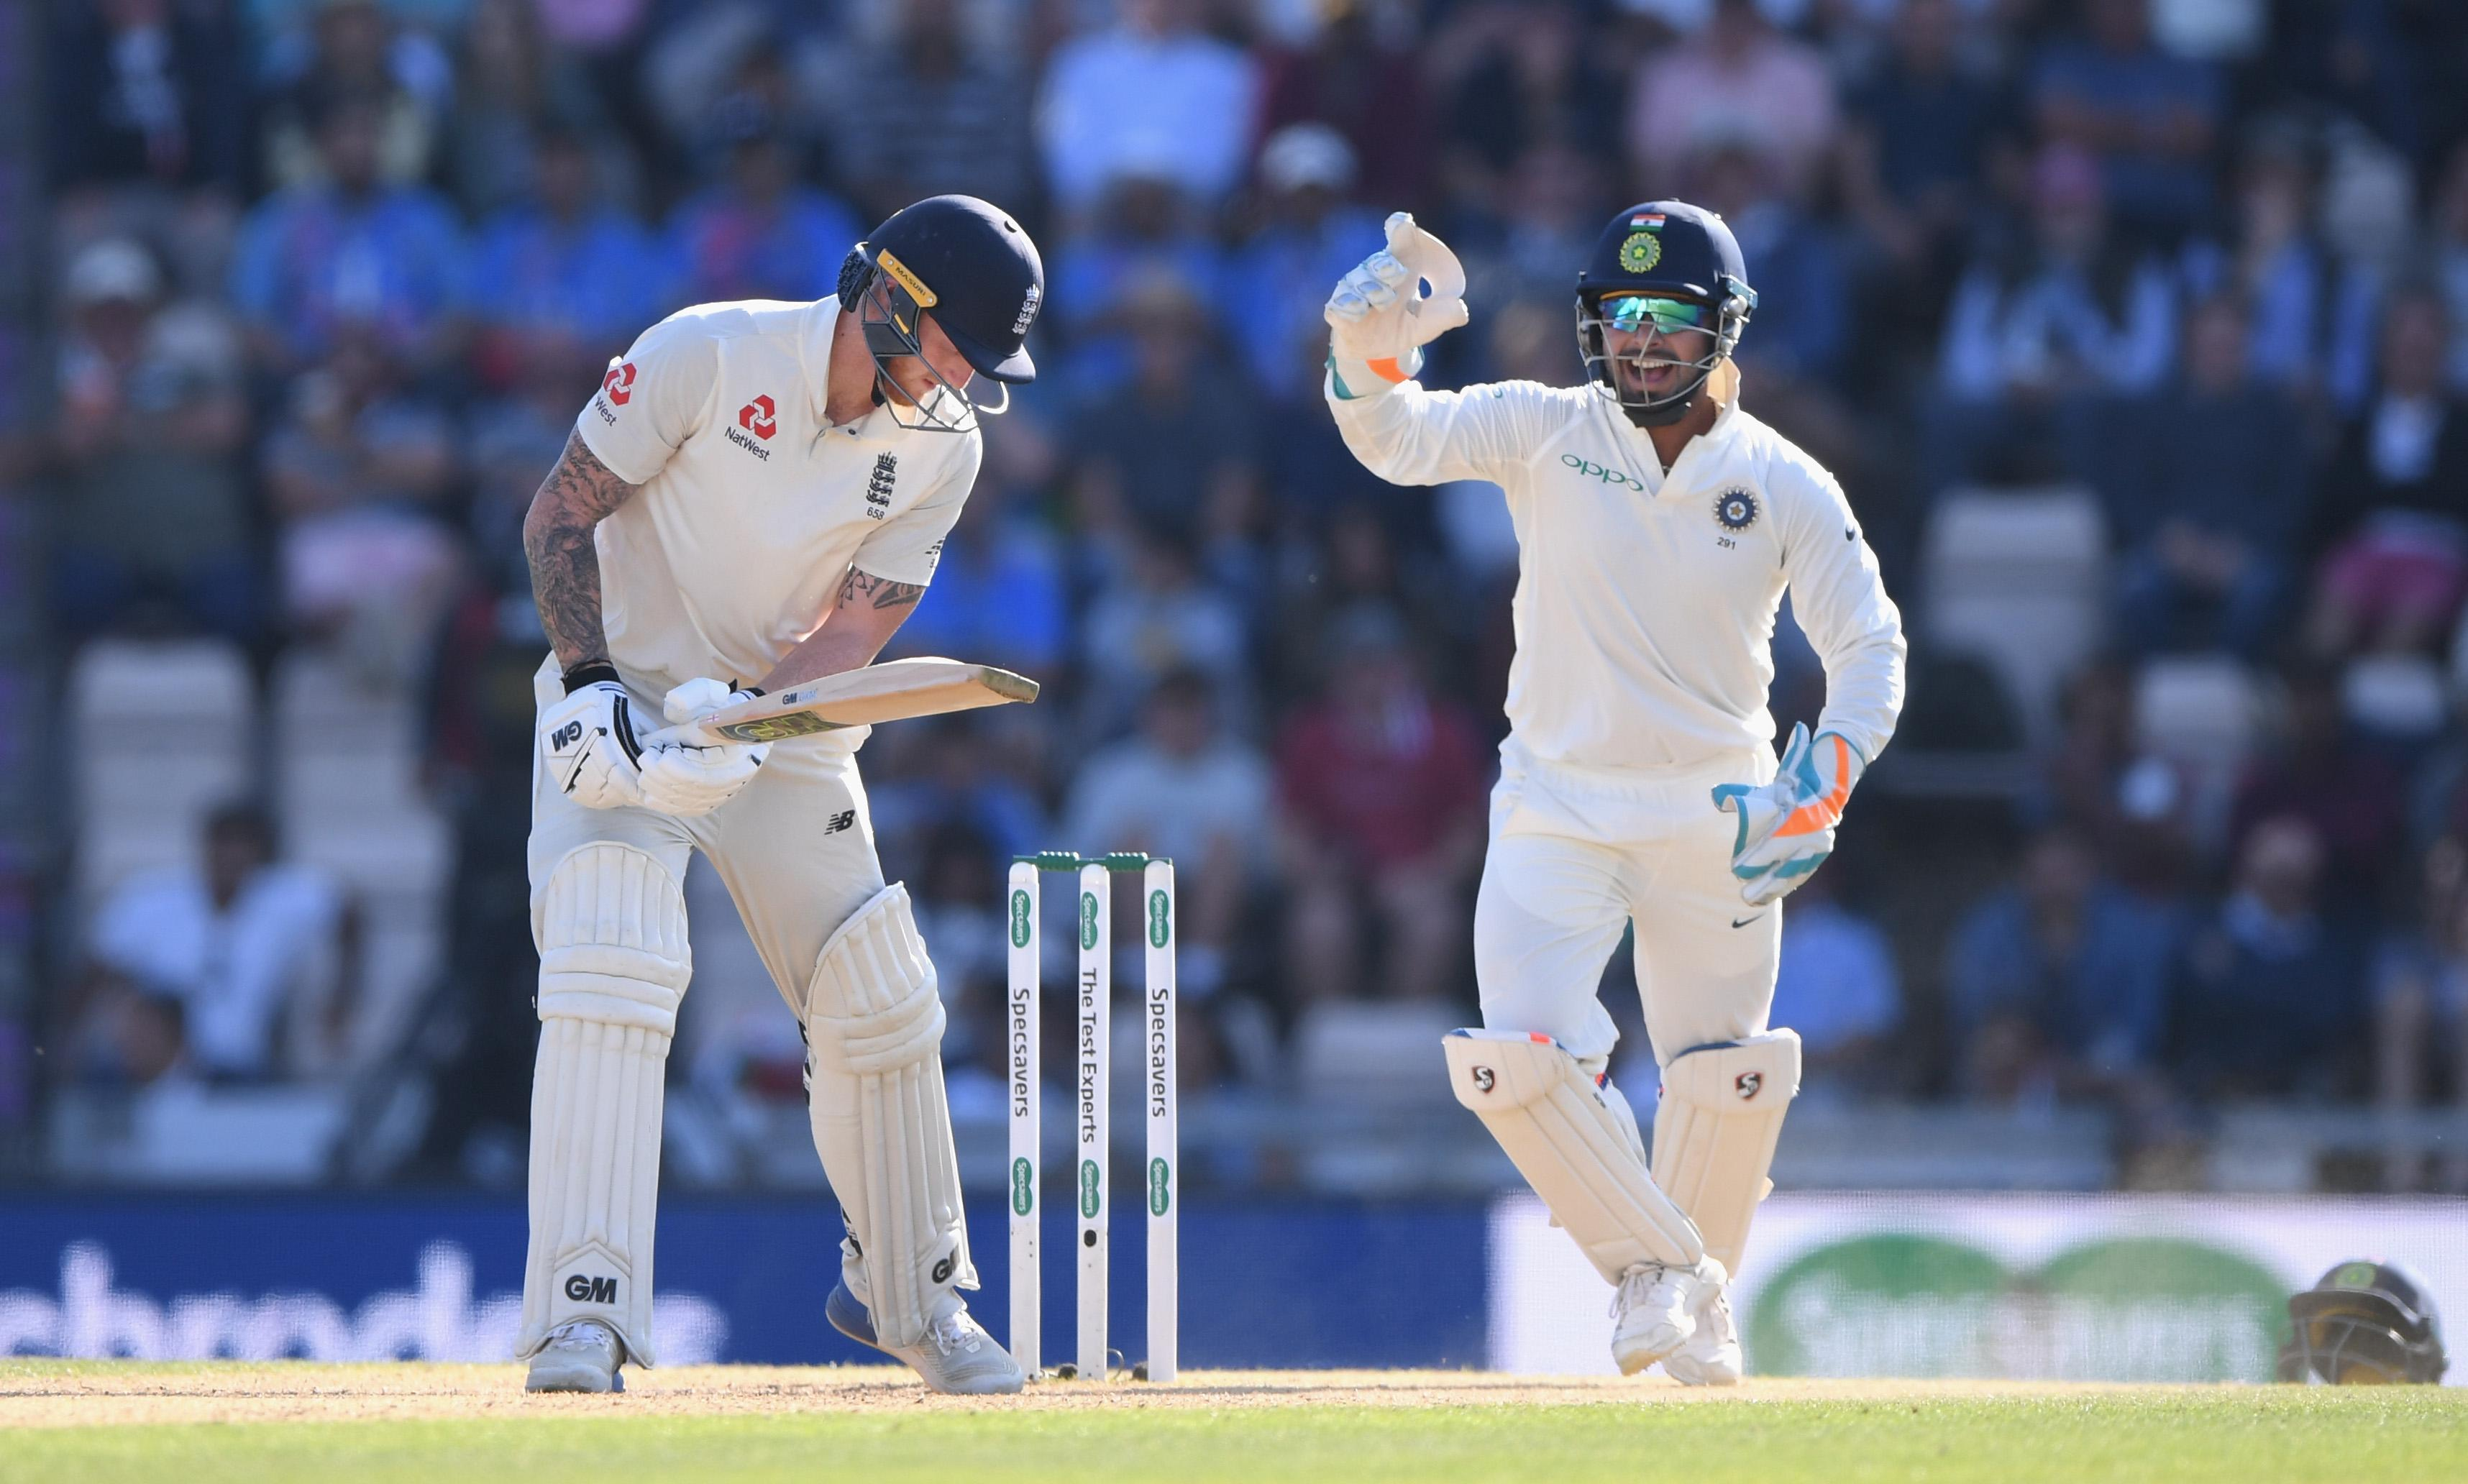 Ben Stokes batted patiently for his 30 from 110 balls